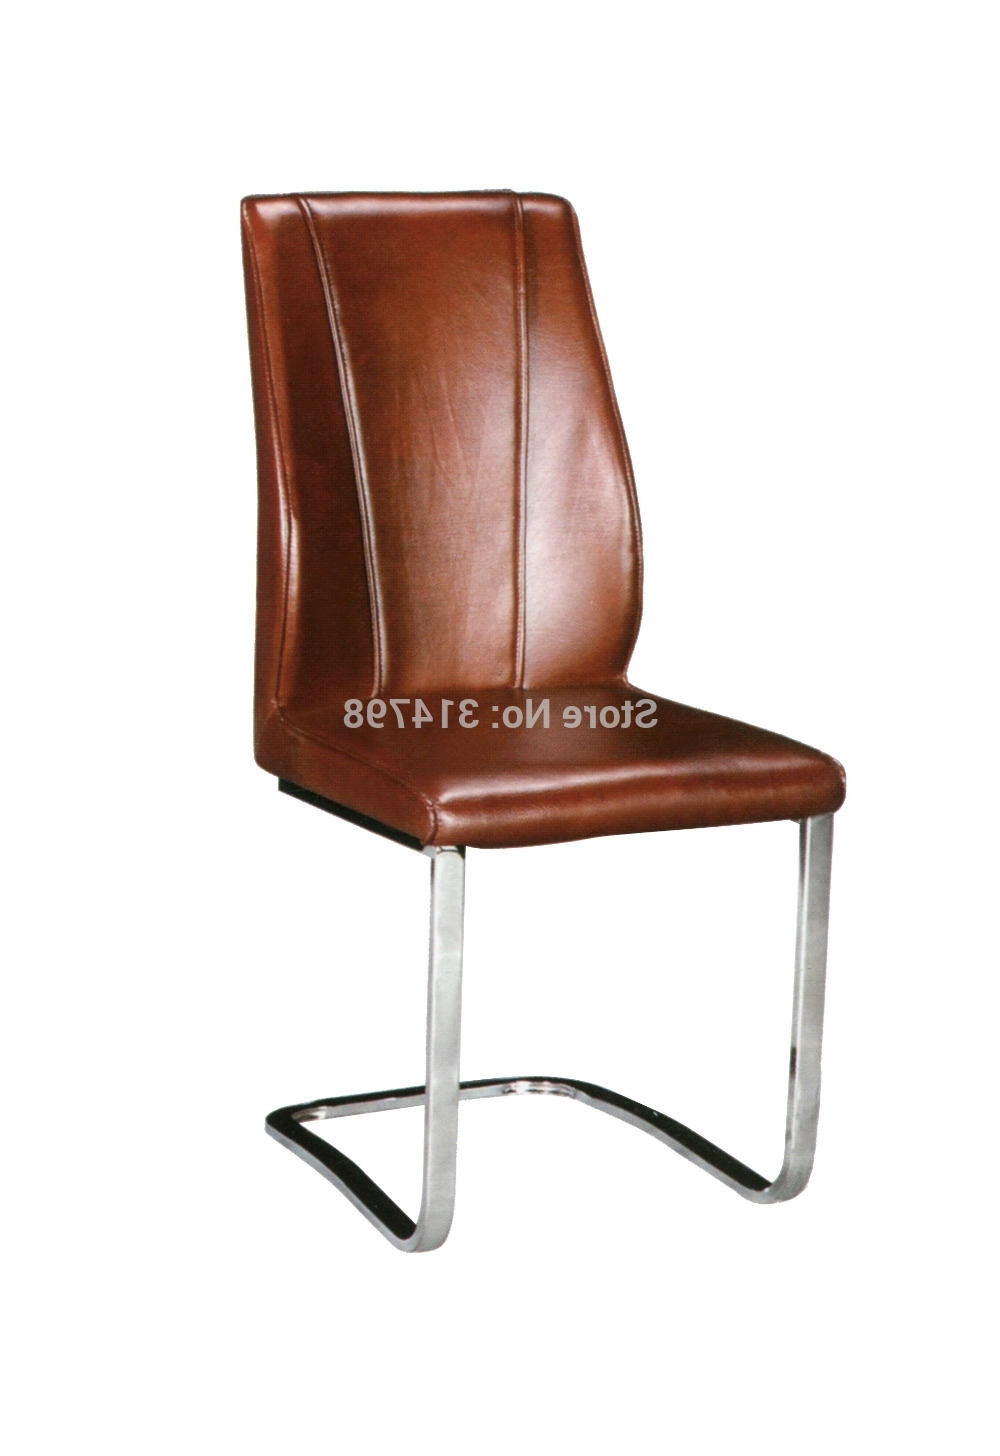 2015 Luxury Brown Leather Dining Chair, Metal Chrome Dining Chairs within Well-known Chrome Leather Dining Chairs